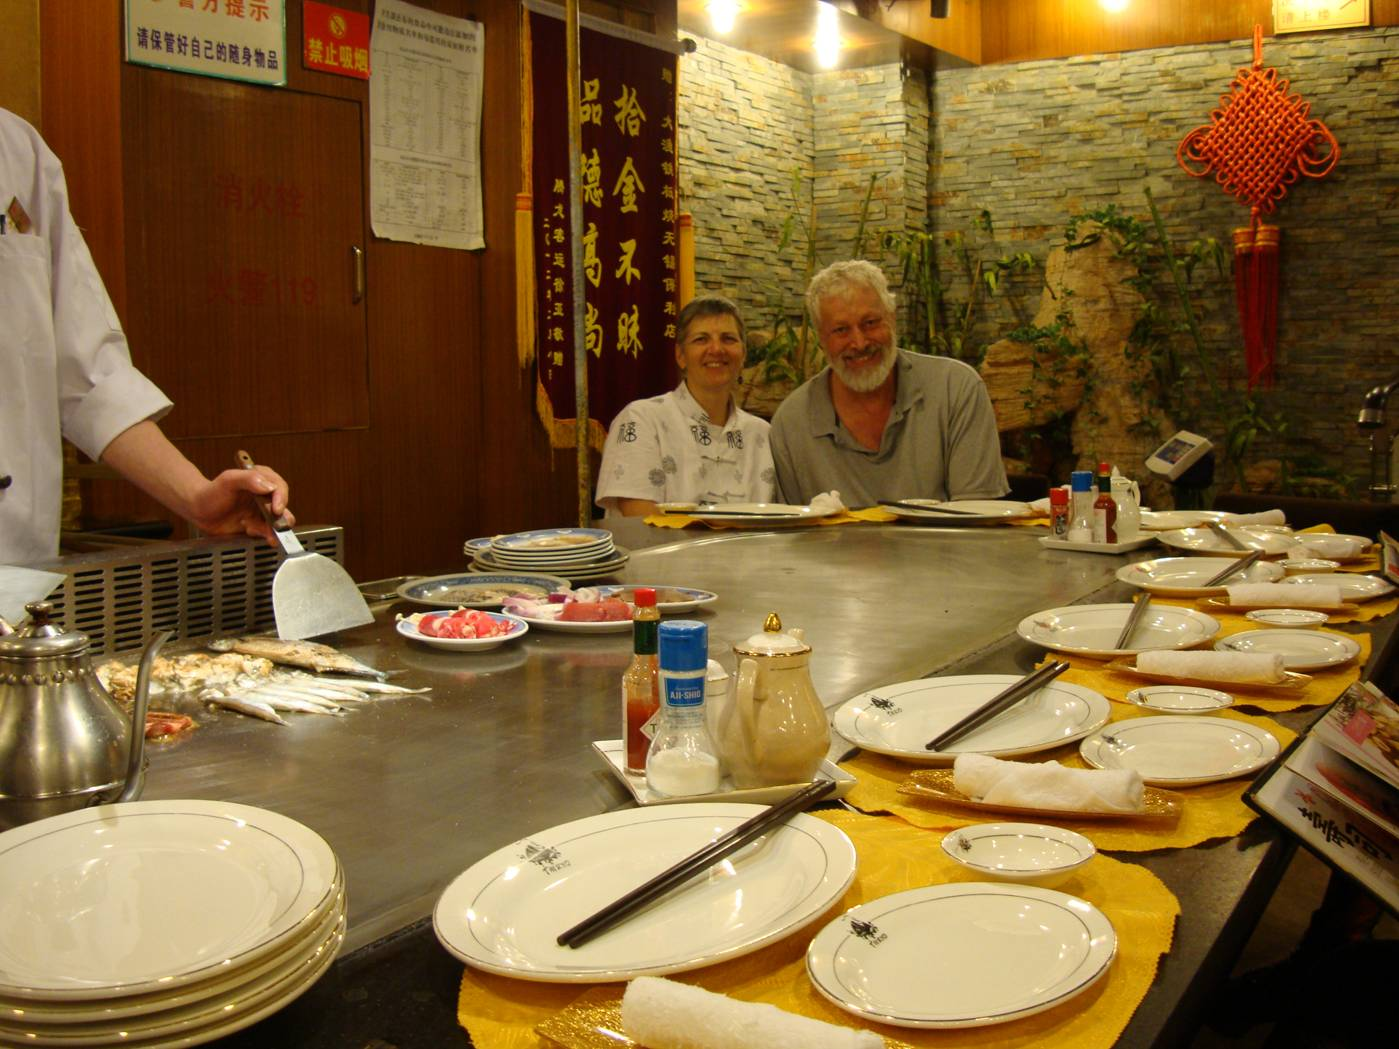 Picture:  Saturday is our eat anything day, the one day of the week when I allow myself any alcohol.  This is the place to allow it.  Teppanyaki Restaurant, Wuxi, China